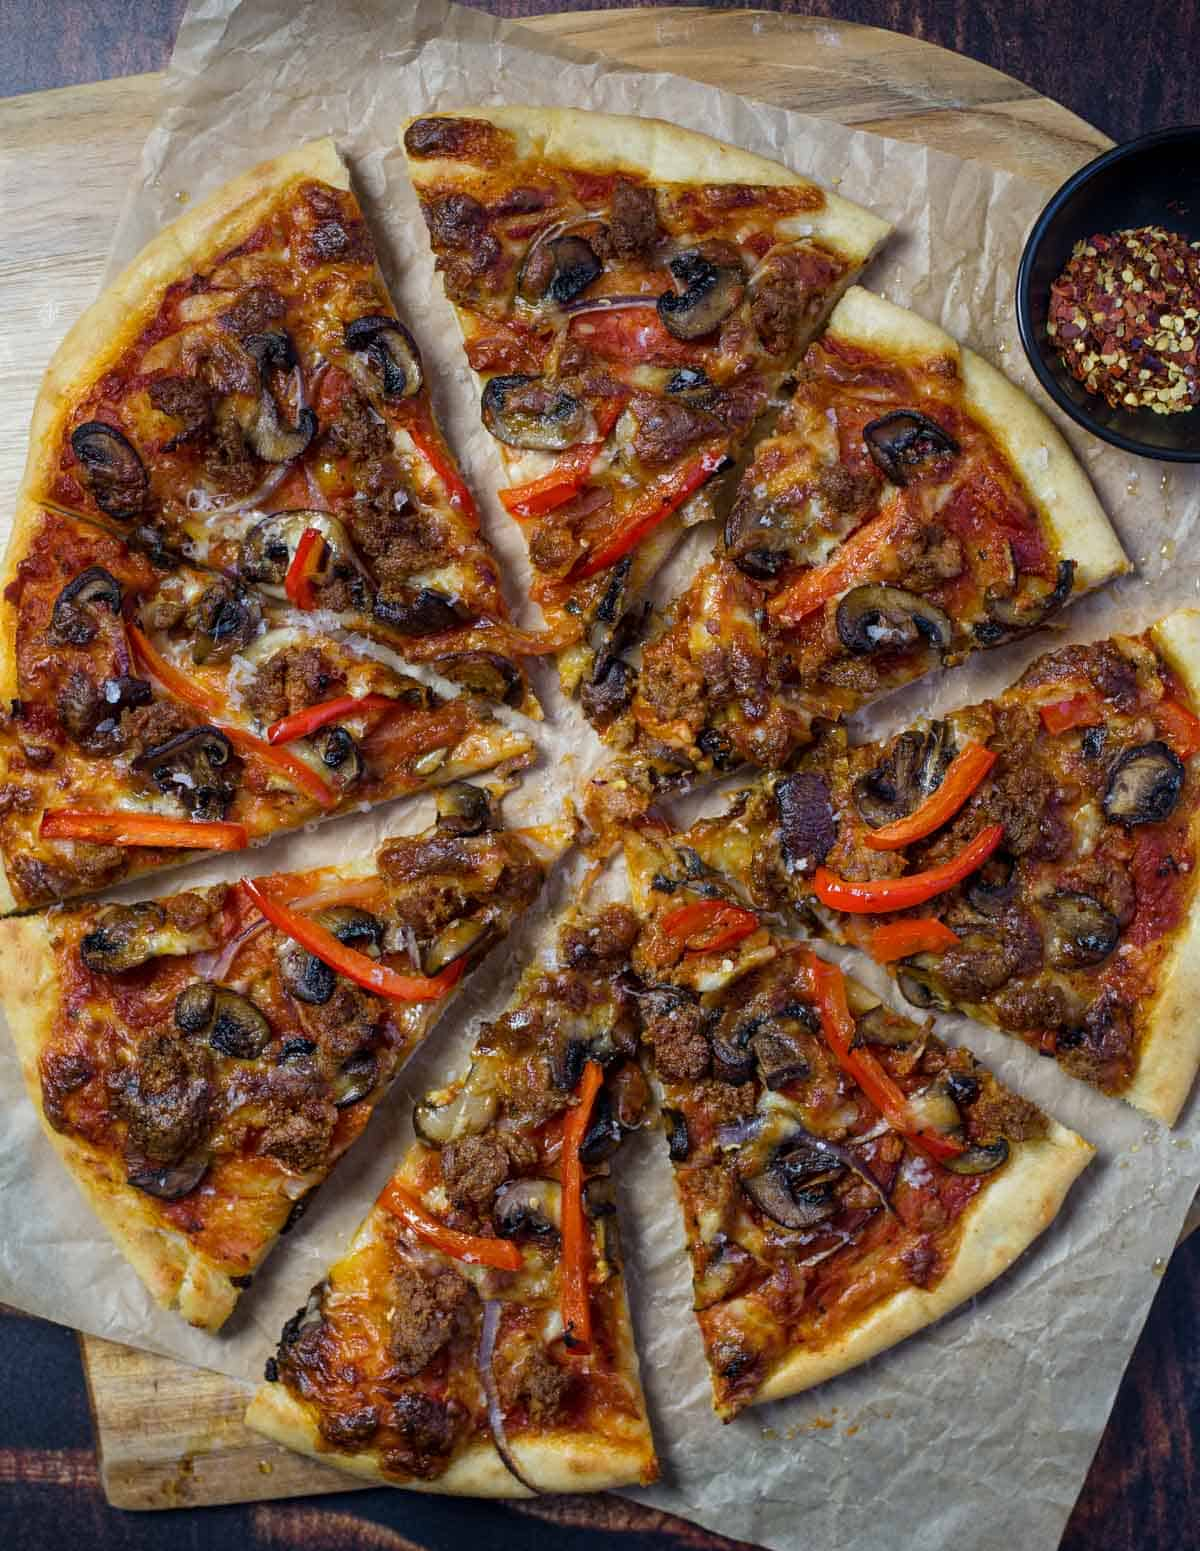 Sausage, mushroom, and peppers pizza cooked on a pellet grill